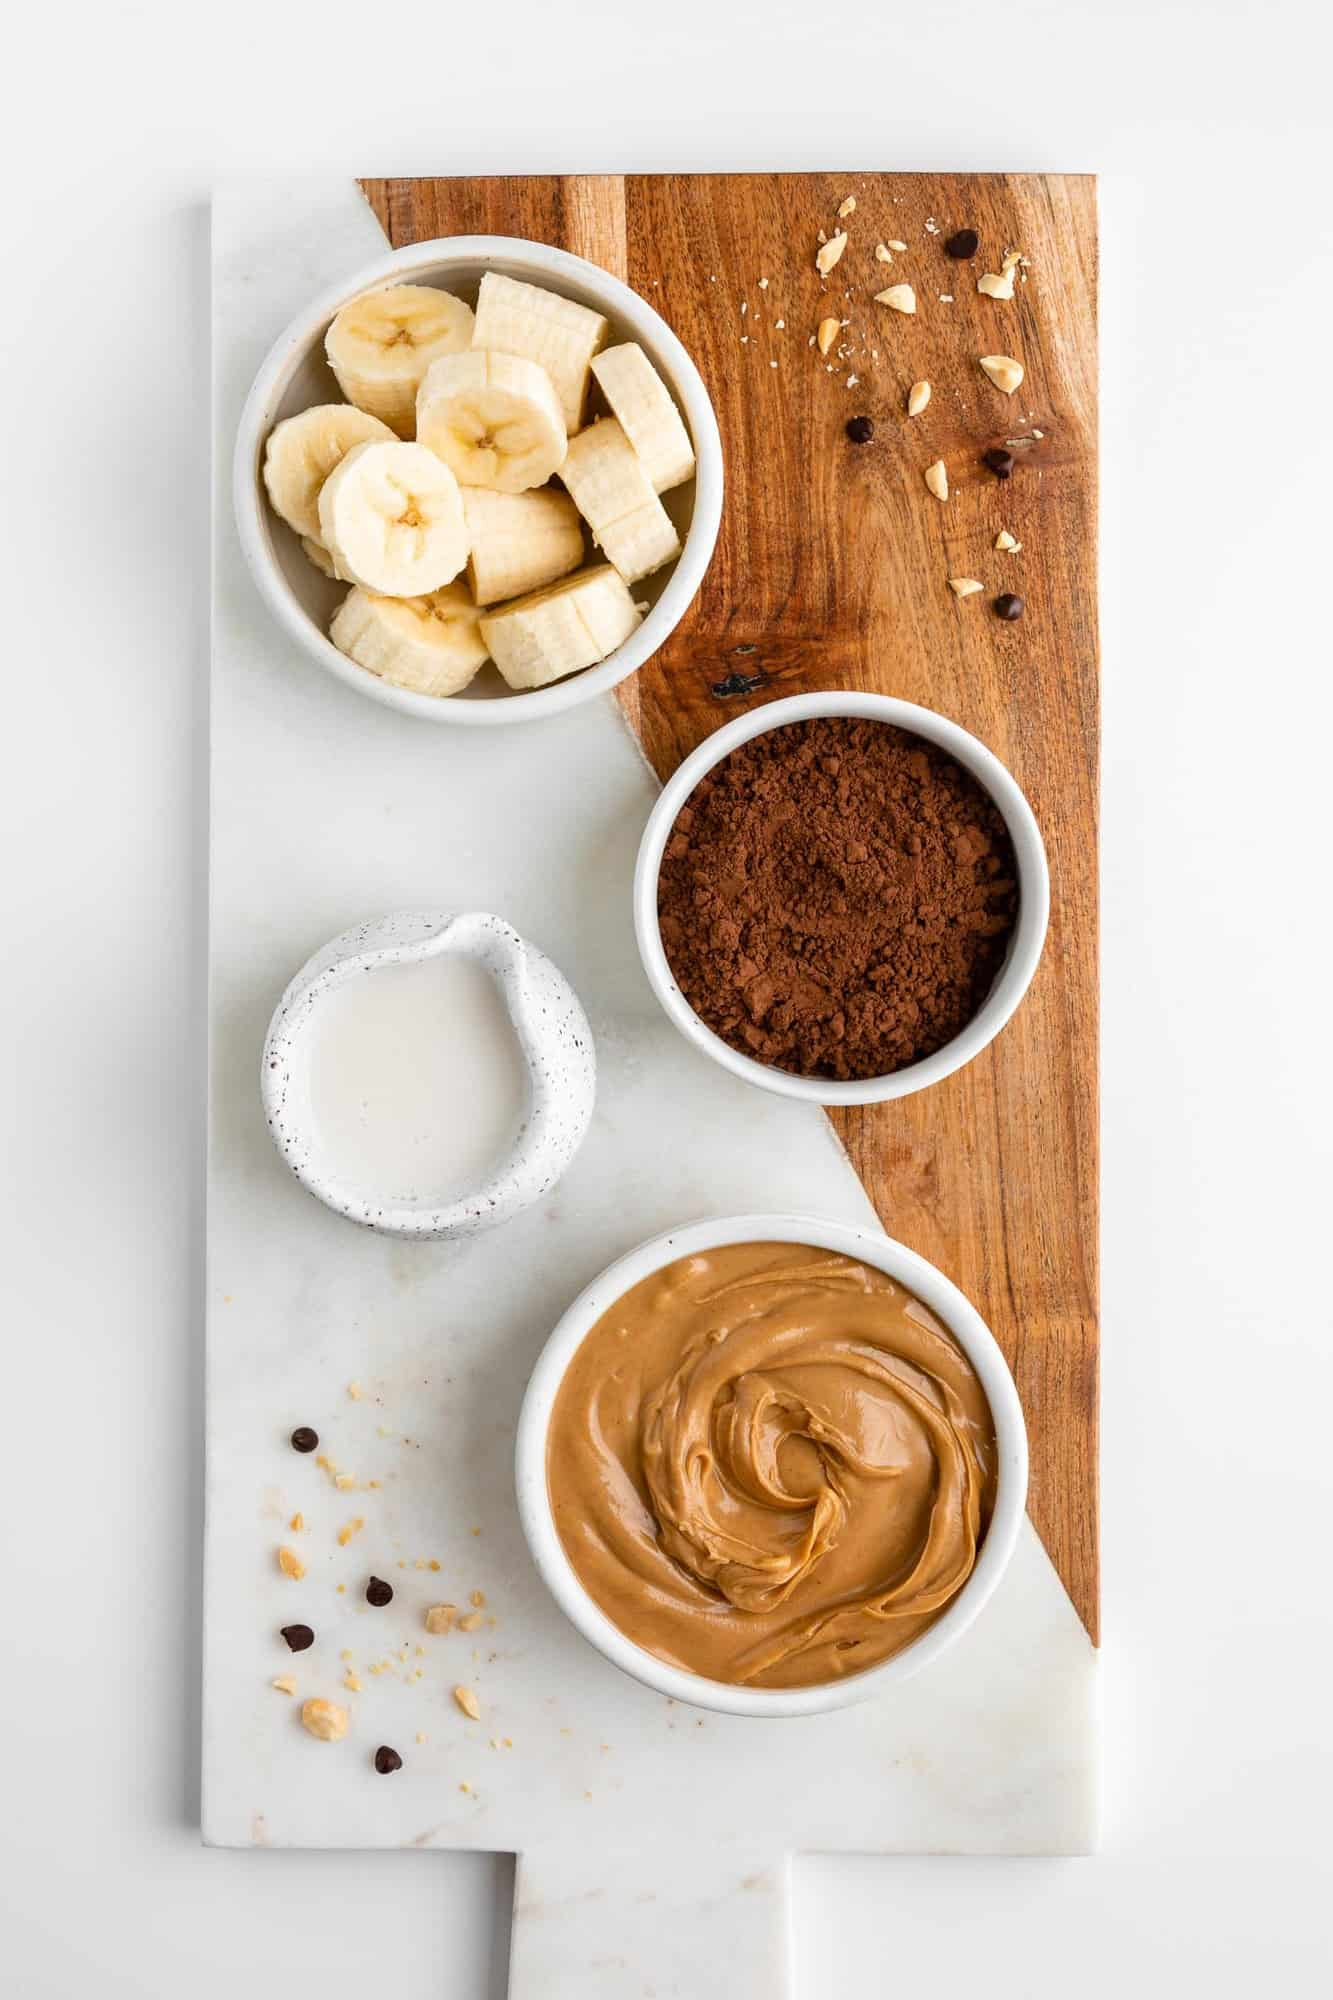 a wood and marble serving board topped with small bowls containing banana, cocoa powder, peanut butter, and almond milk